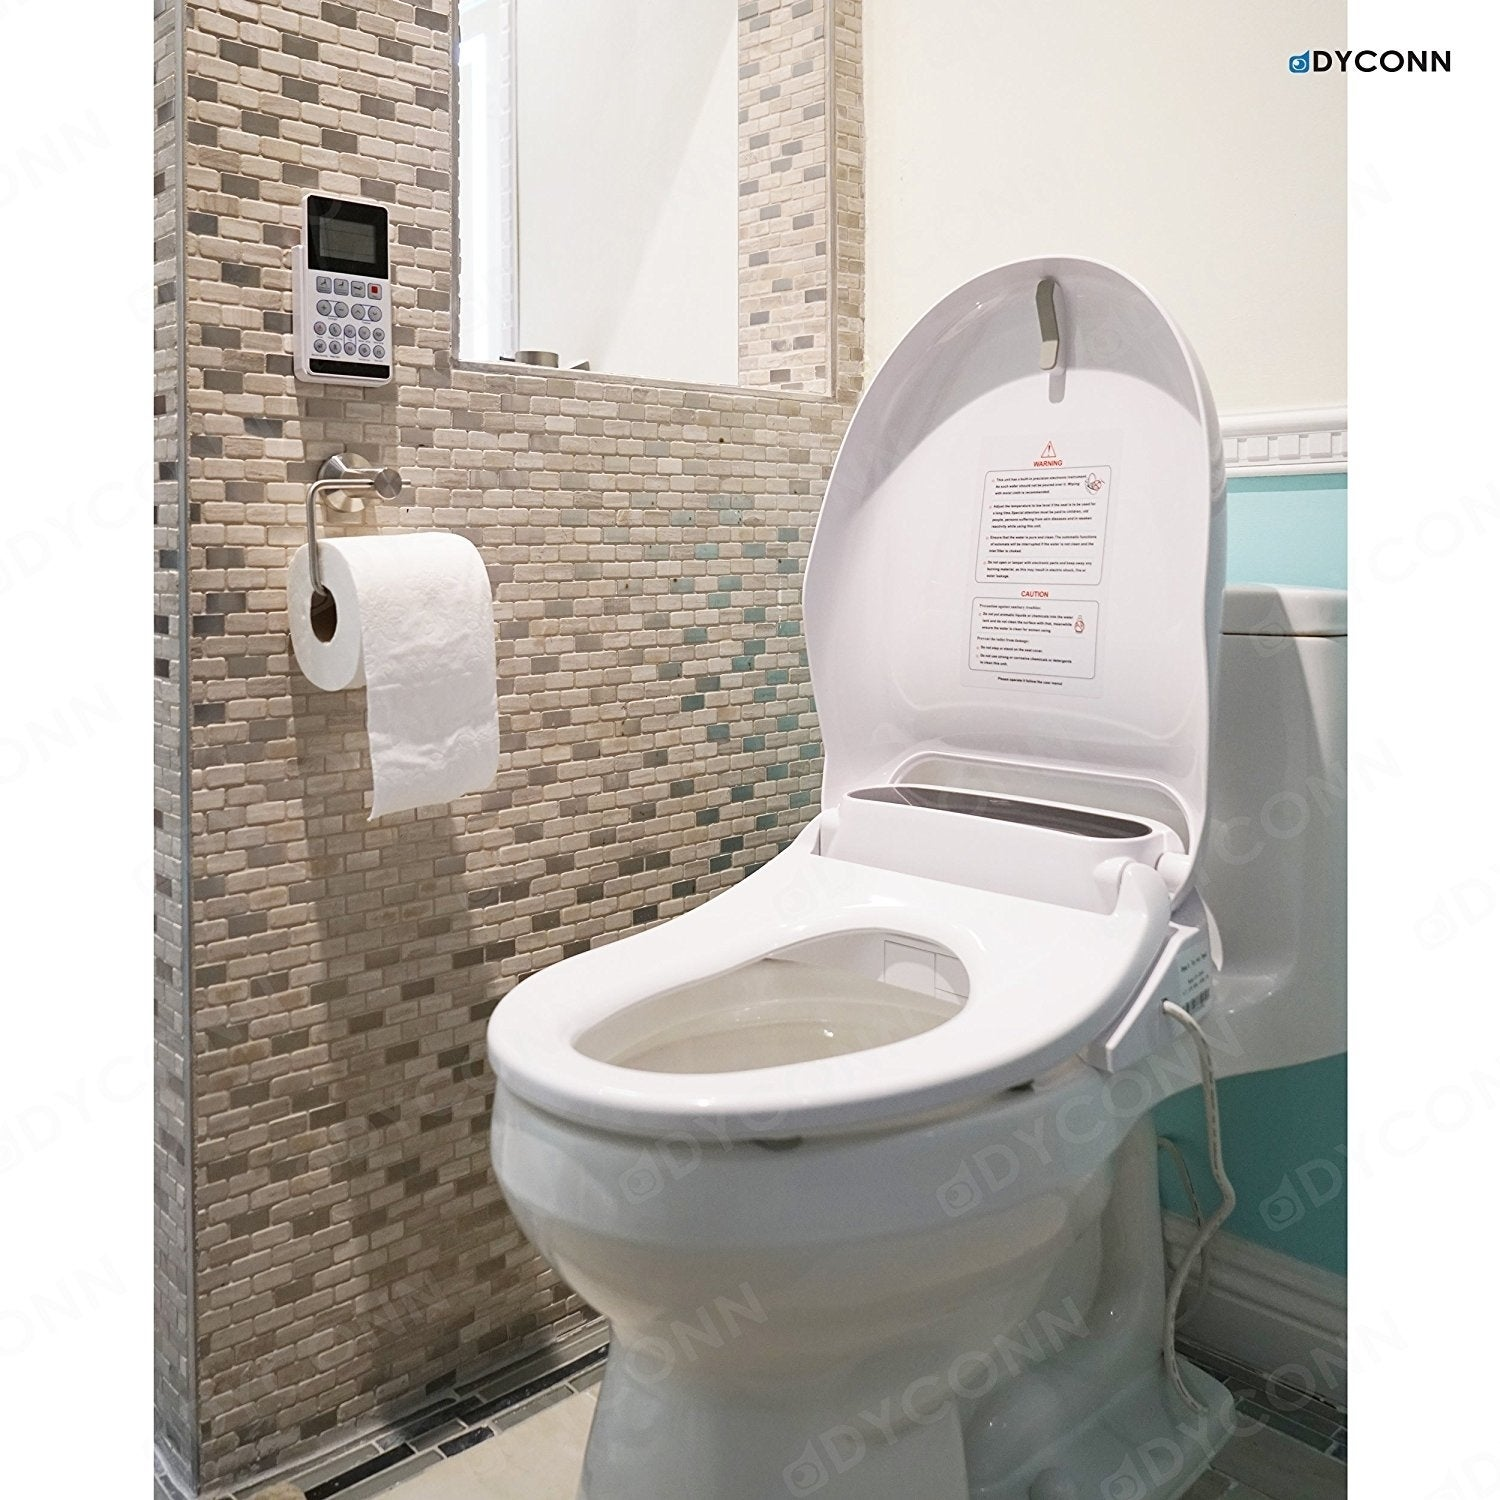 Shop Dyconn Faucet Automatic Bidet Toilet Seat With Anti-Microbial ...